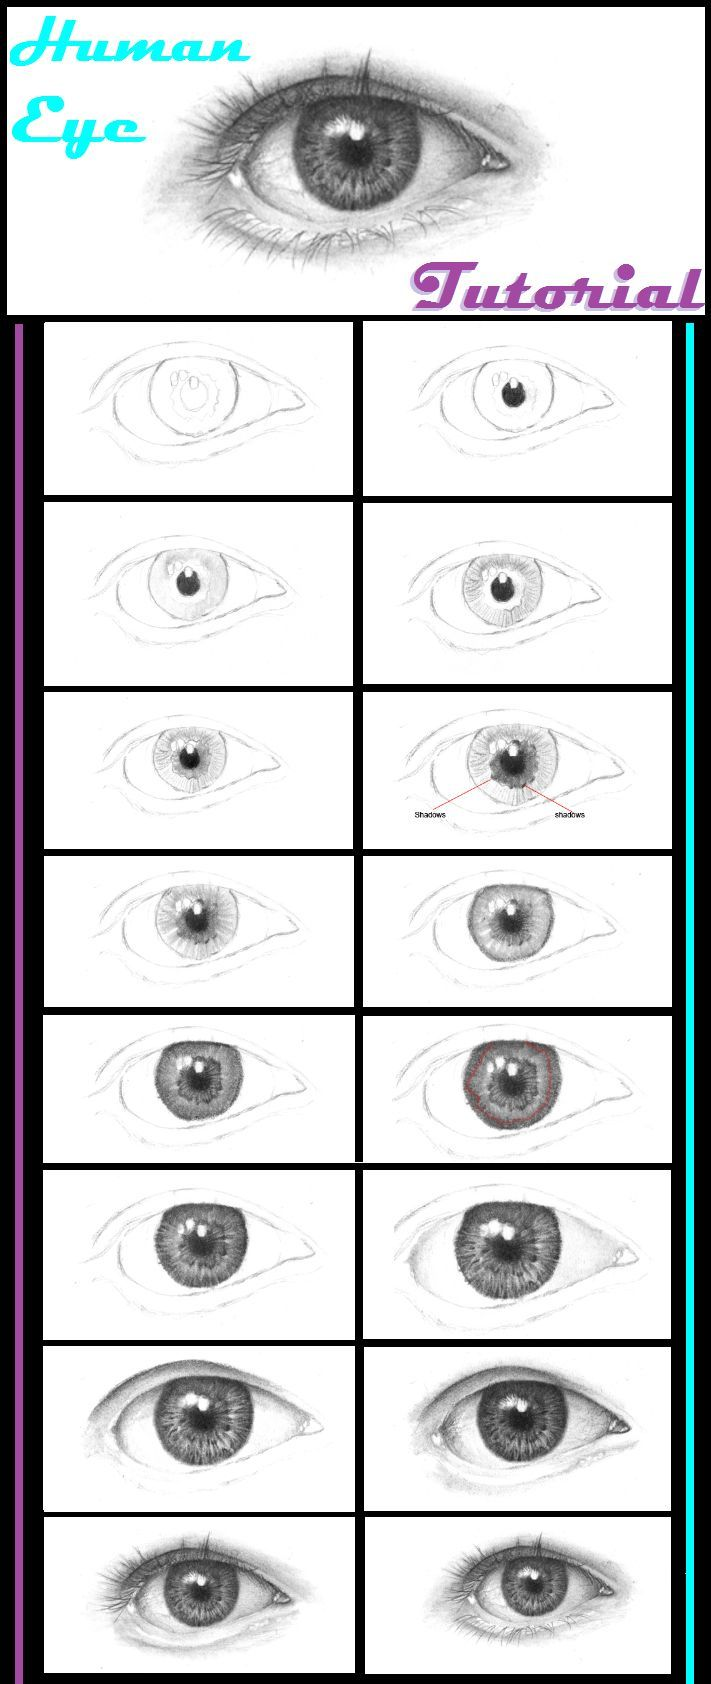 How To Draw A Human Eye #human_eye_tutorial: